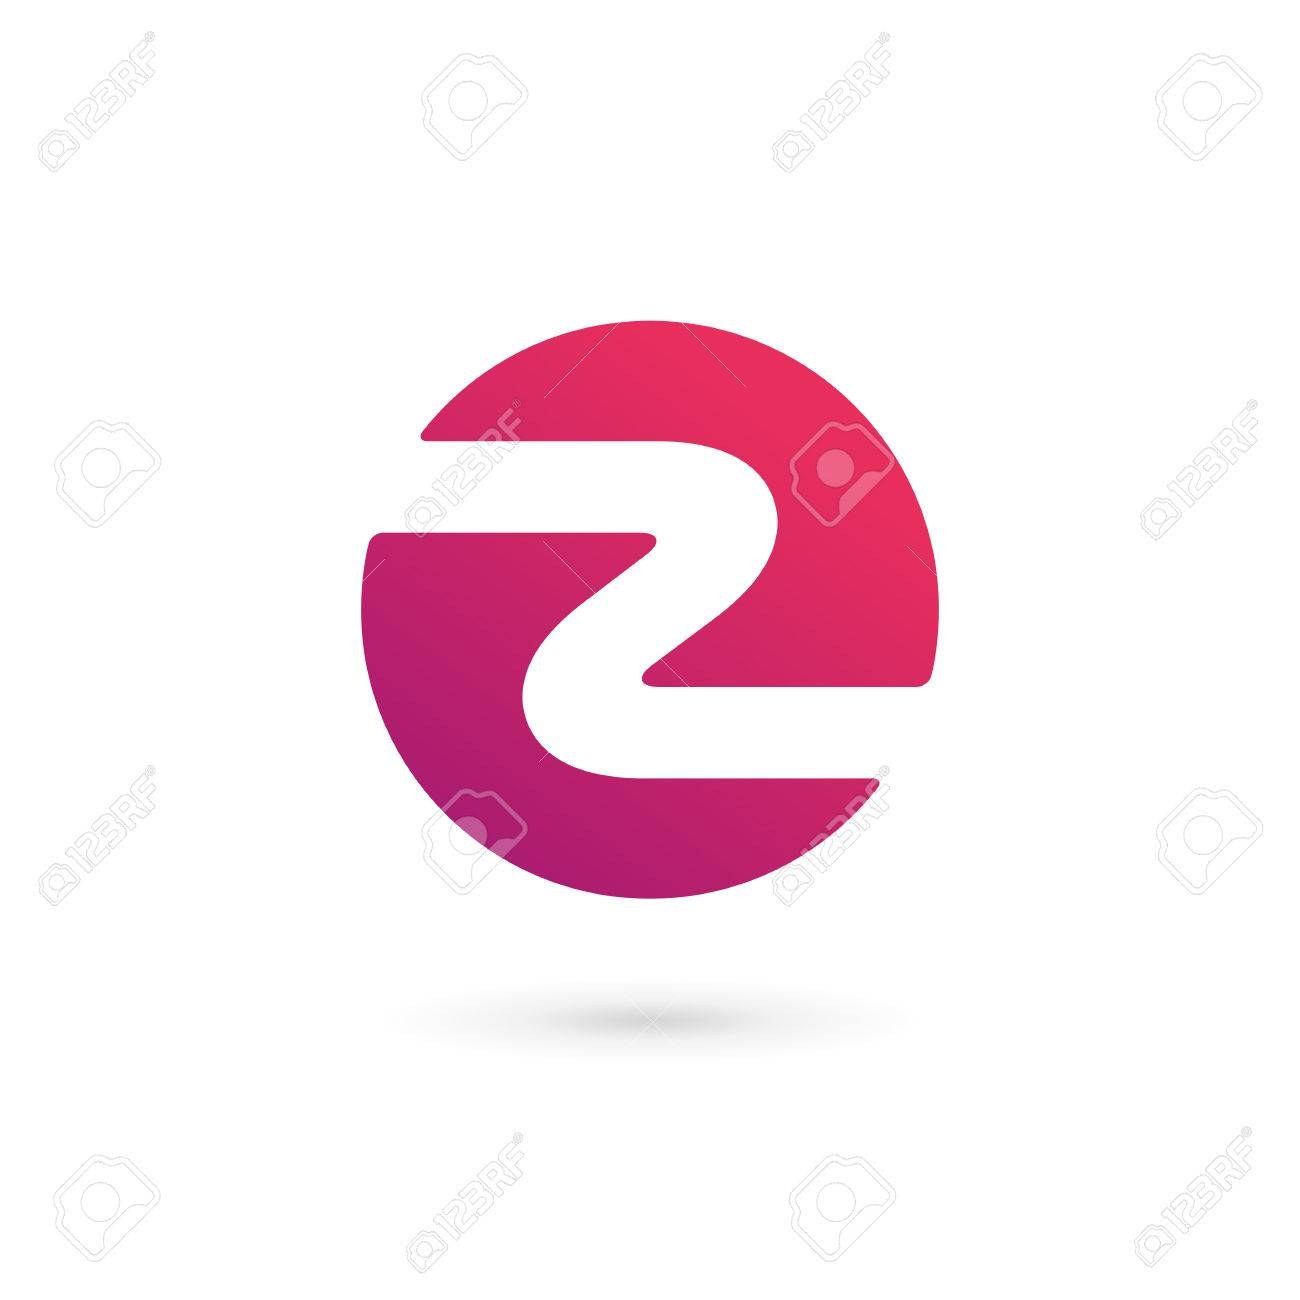 letter z number 2 logo icon design template elements royalty free